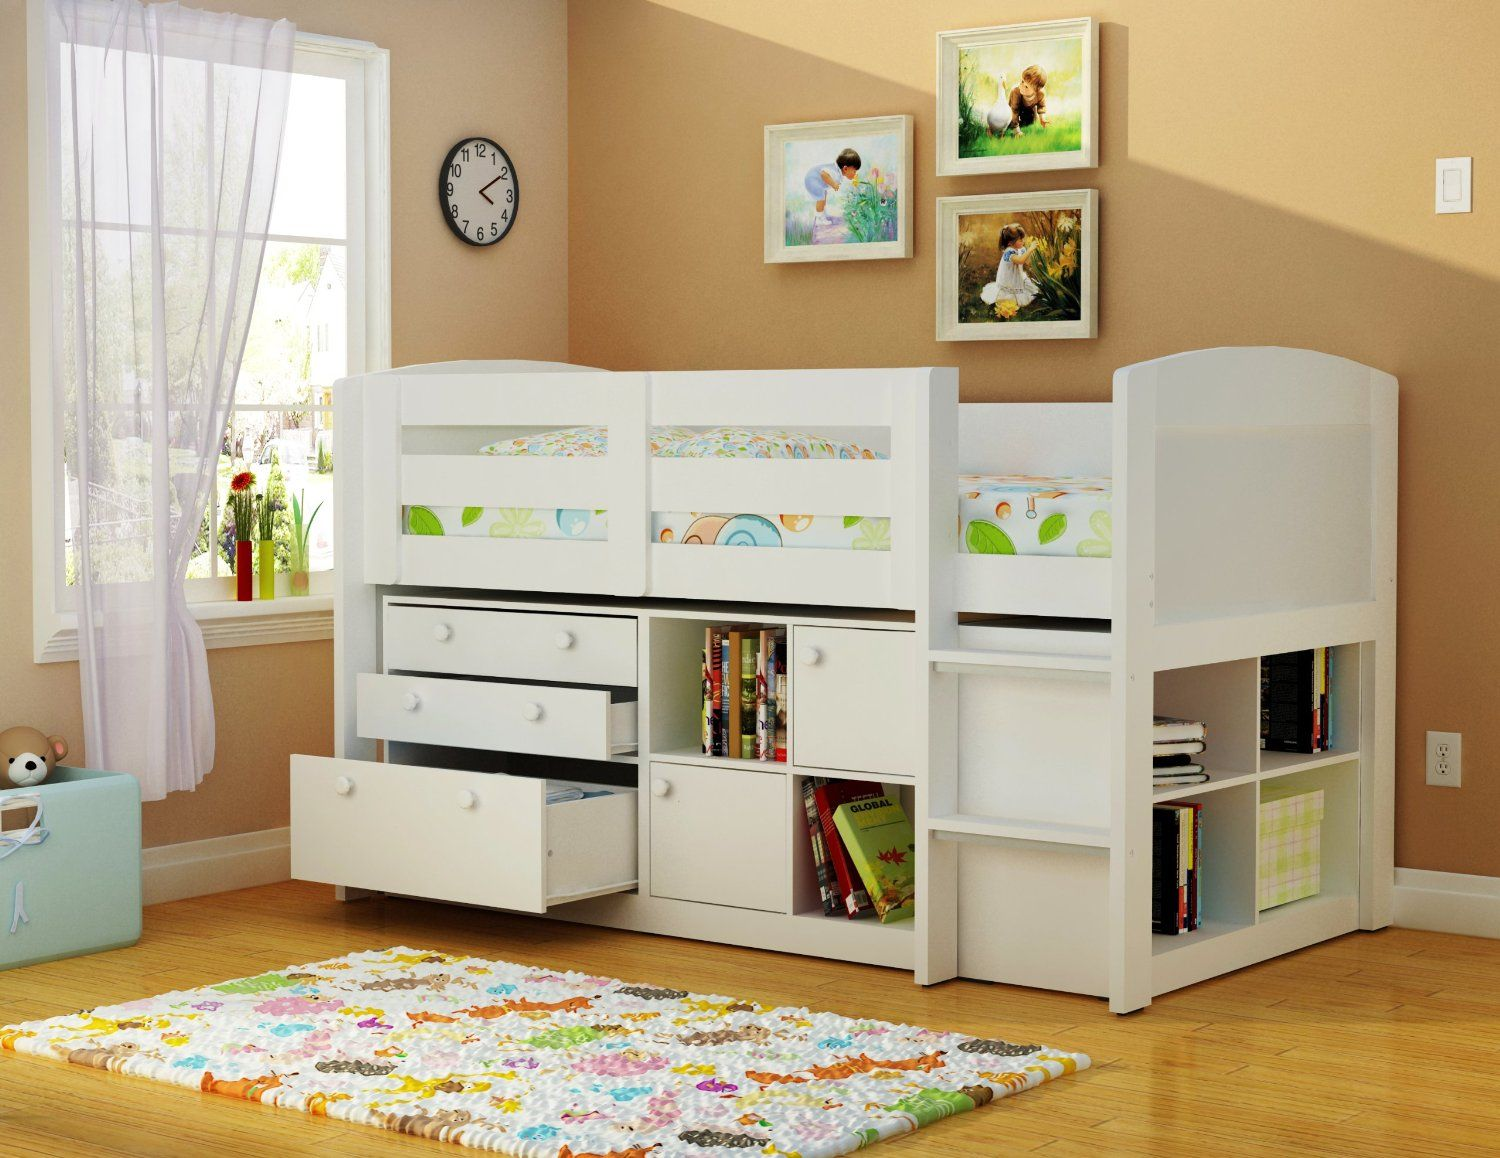 near affordable decorator figurines kids be loft me ideas boys choose beds on many storage accessories people to a bed cool value interior bunk home bedroom for with